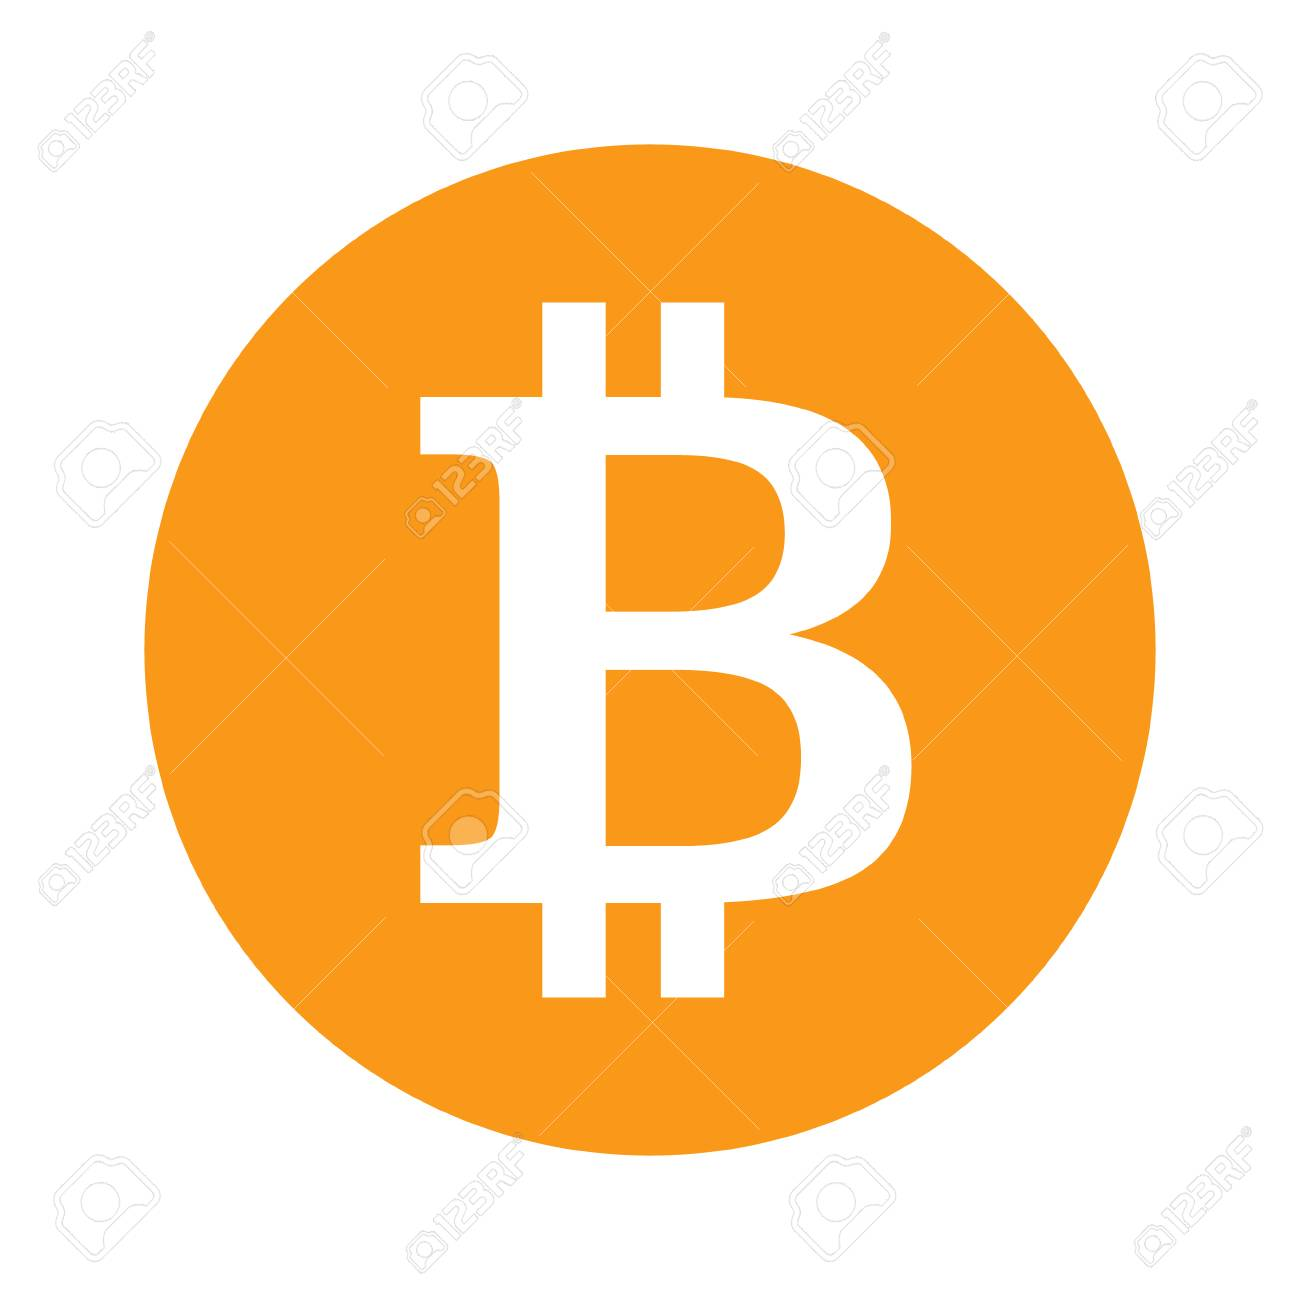 Bitcoin cryptocurrency gold round flat icon for apps and websites bitcoin cryptocurrency gold round flat icon for apps and websites stock vector 50177531 buycottarizona Image collections